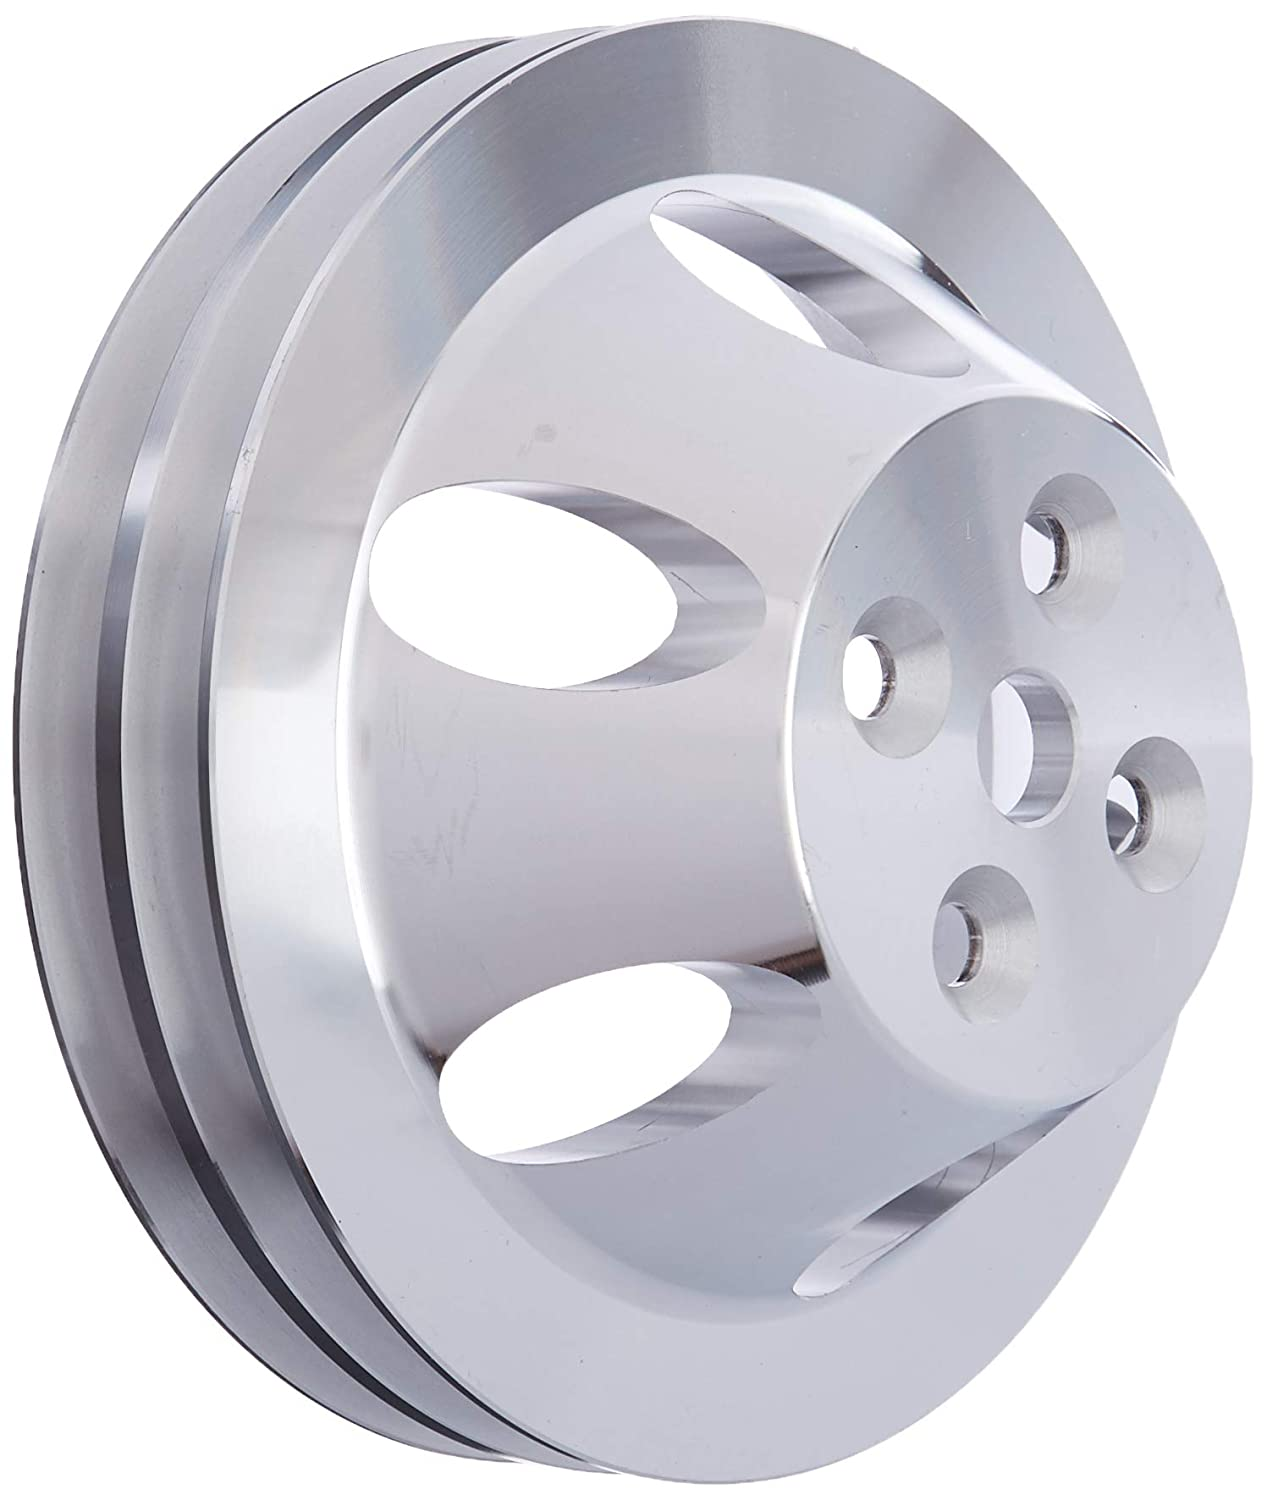 Racing Power Company R8842 Satin Aluminum SWP Double Groove Pulley for Big Block Chevy